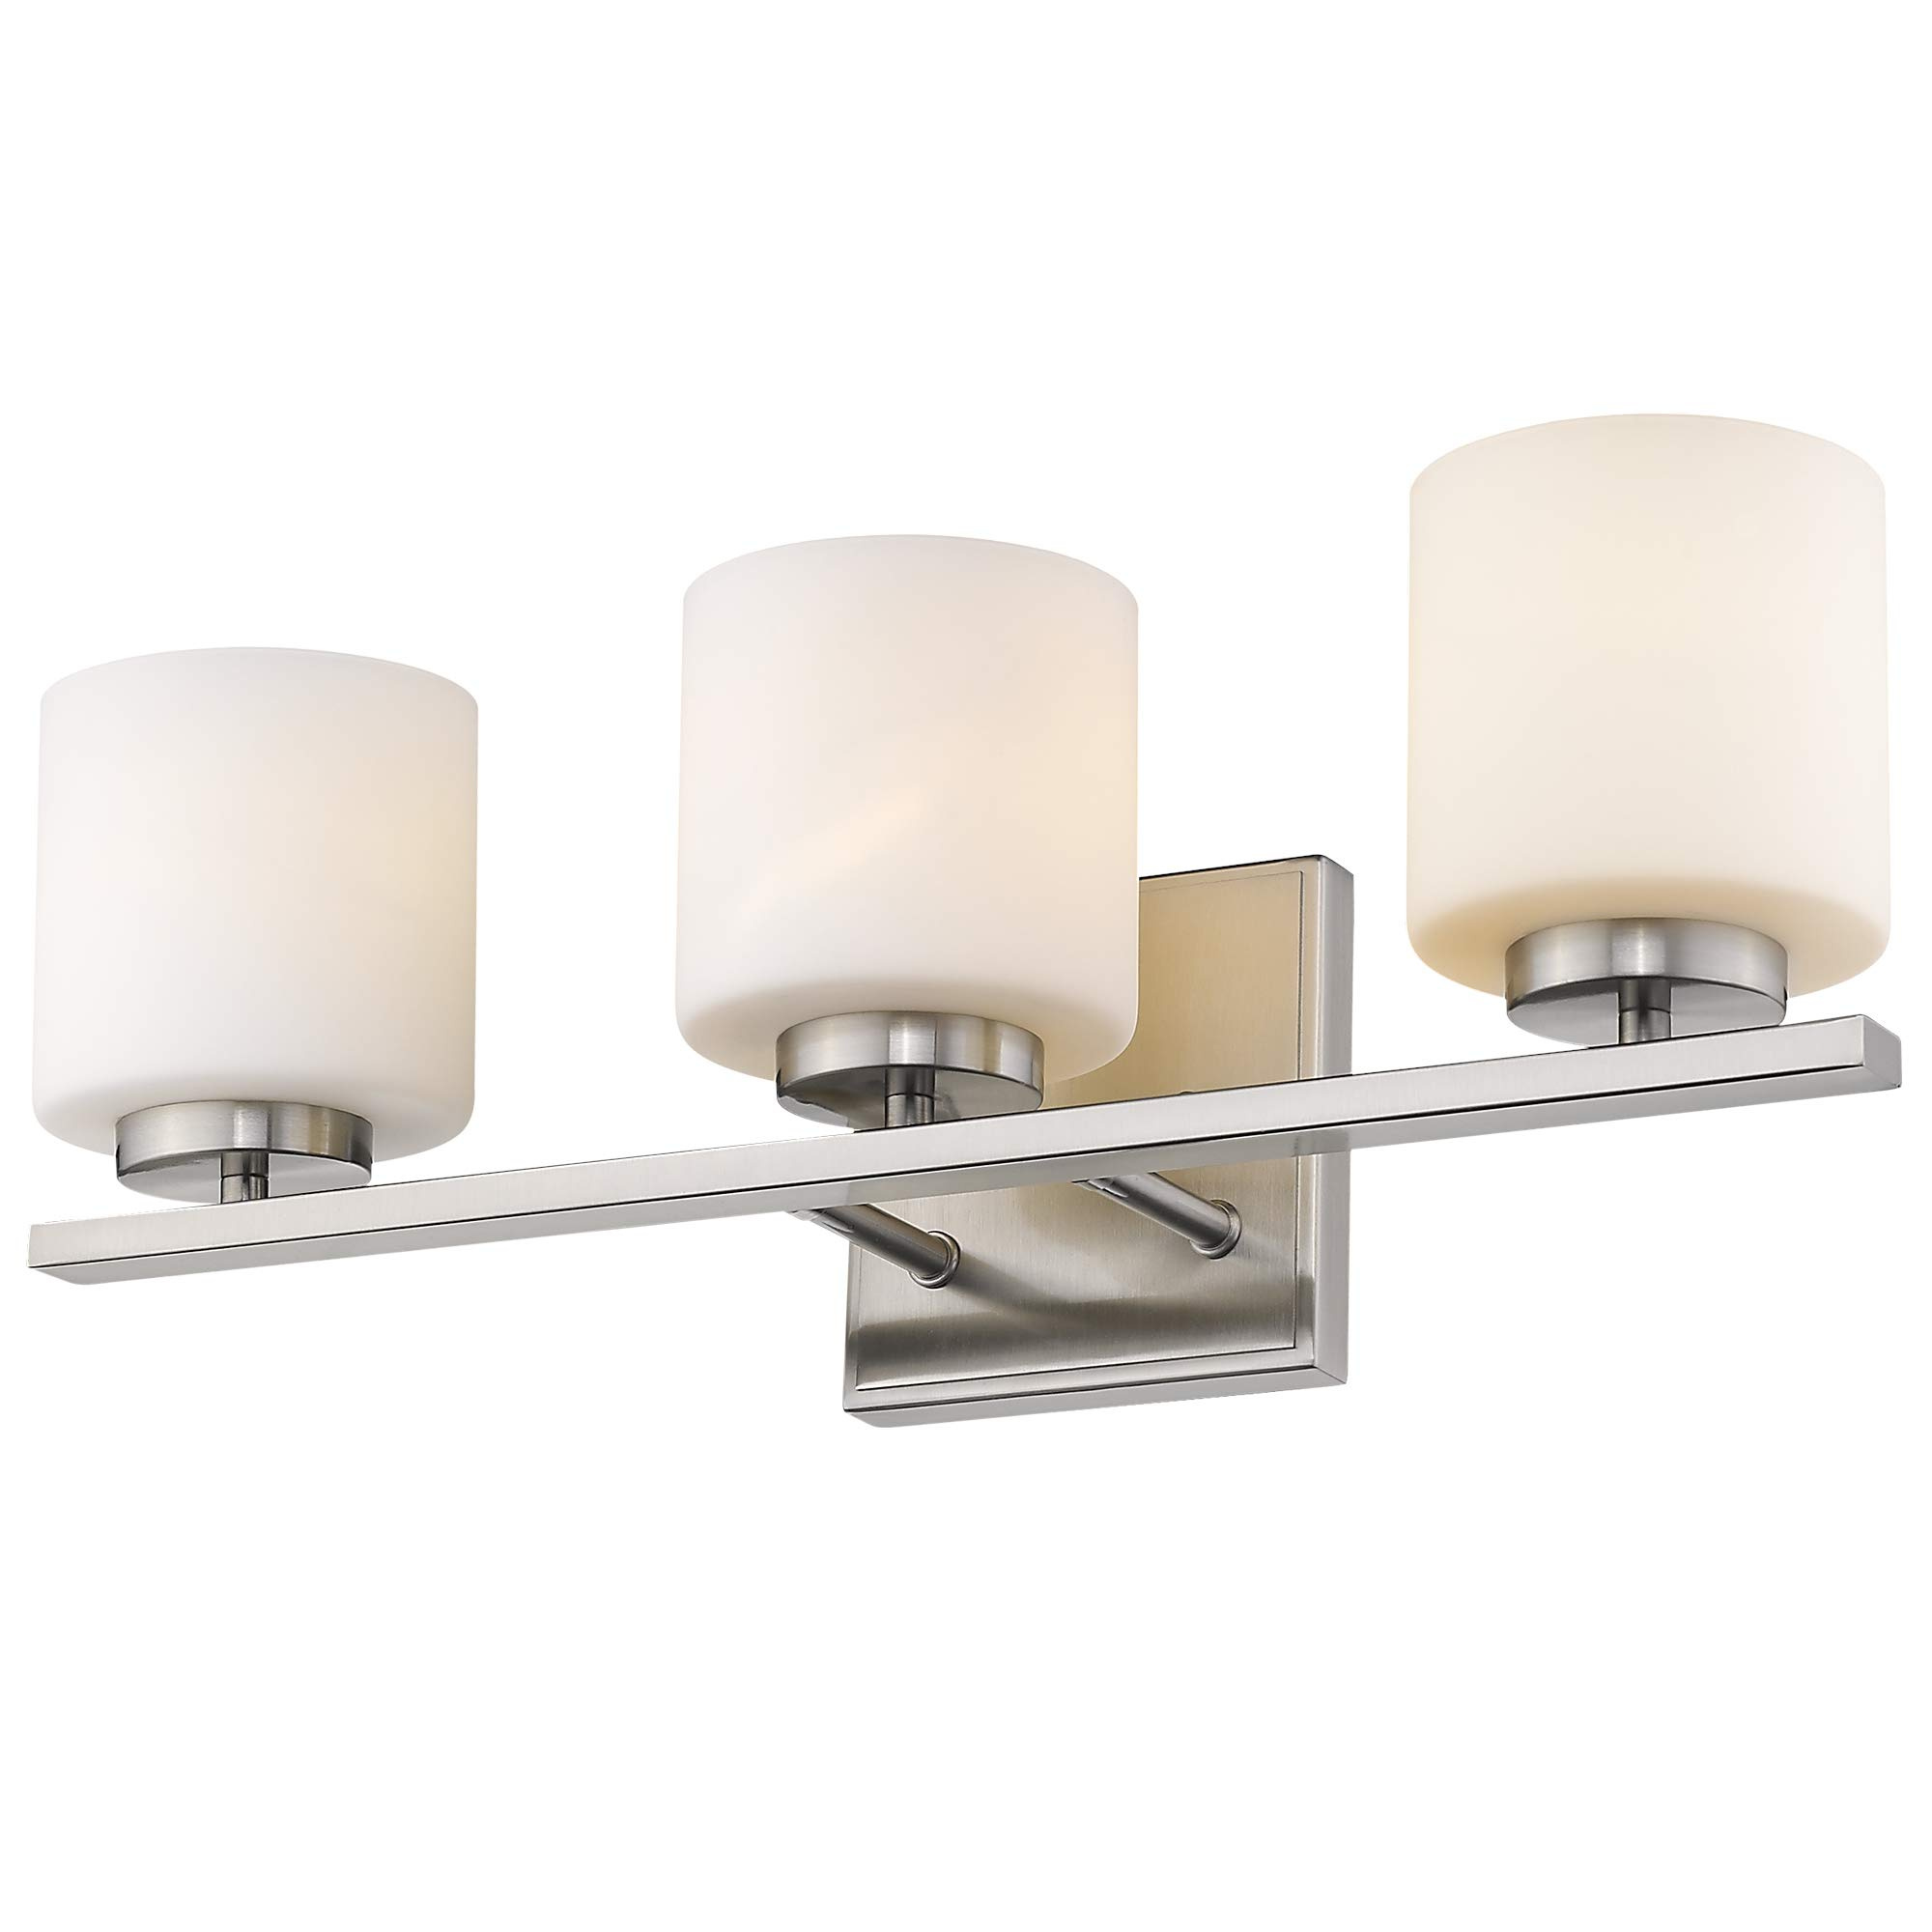 Emliviar 3-Light Bathroom Vanity Light Fixture, Brushed Nickel Finish with White Frosted Glass Shade, 21002-3B by EMLIVIAR (Image #1)